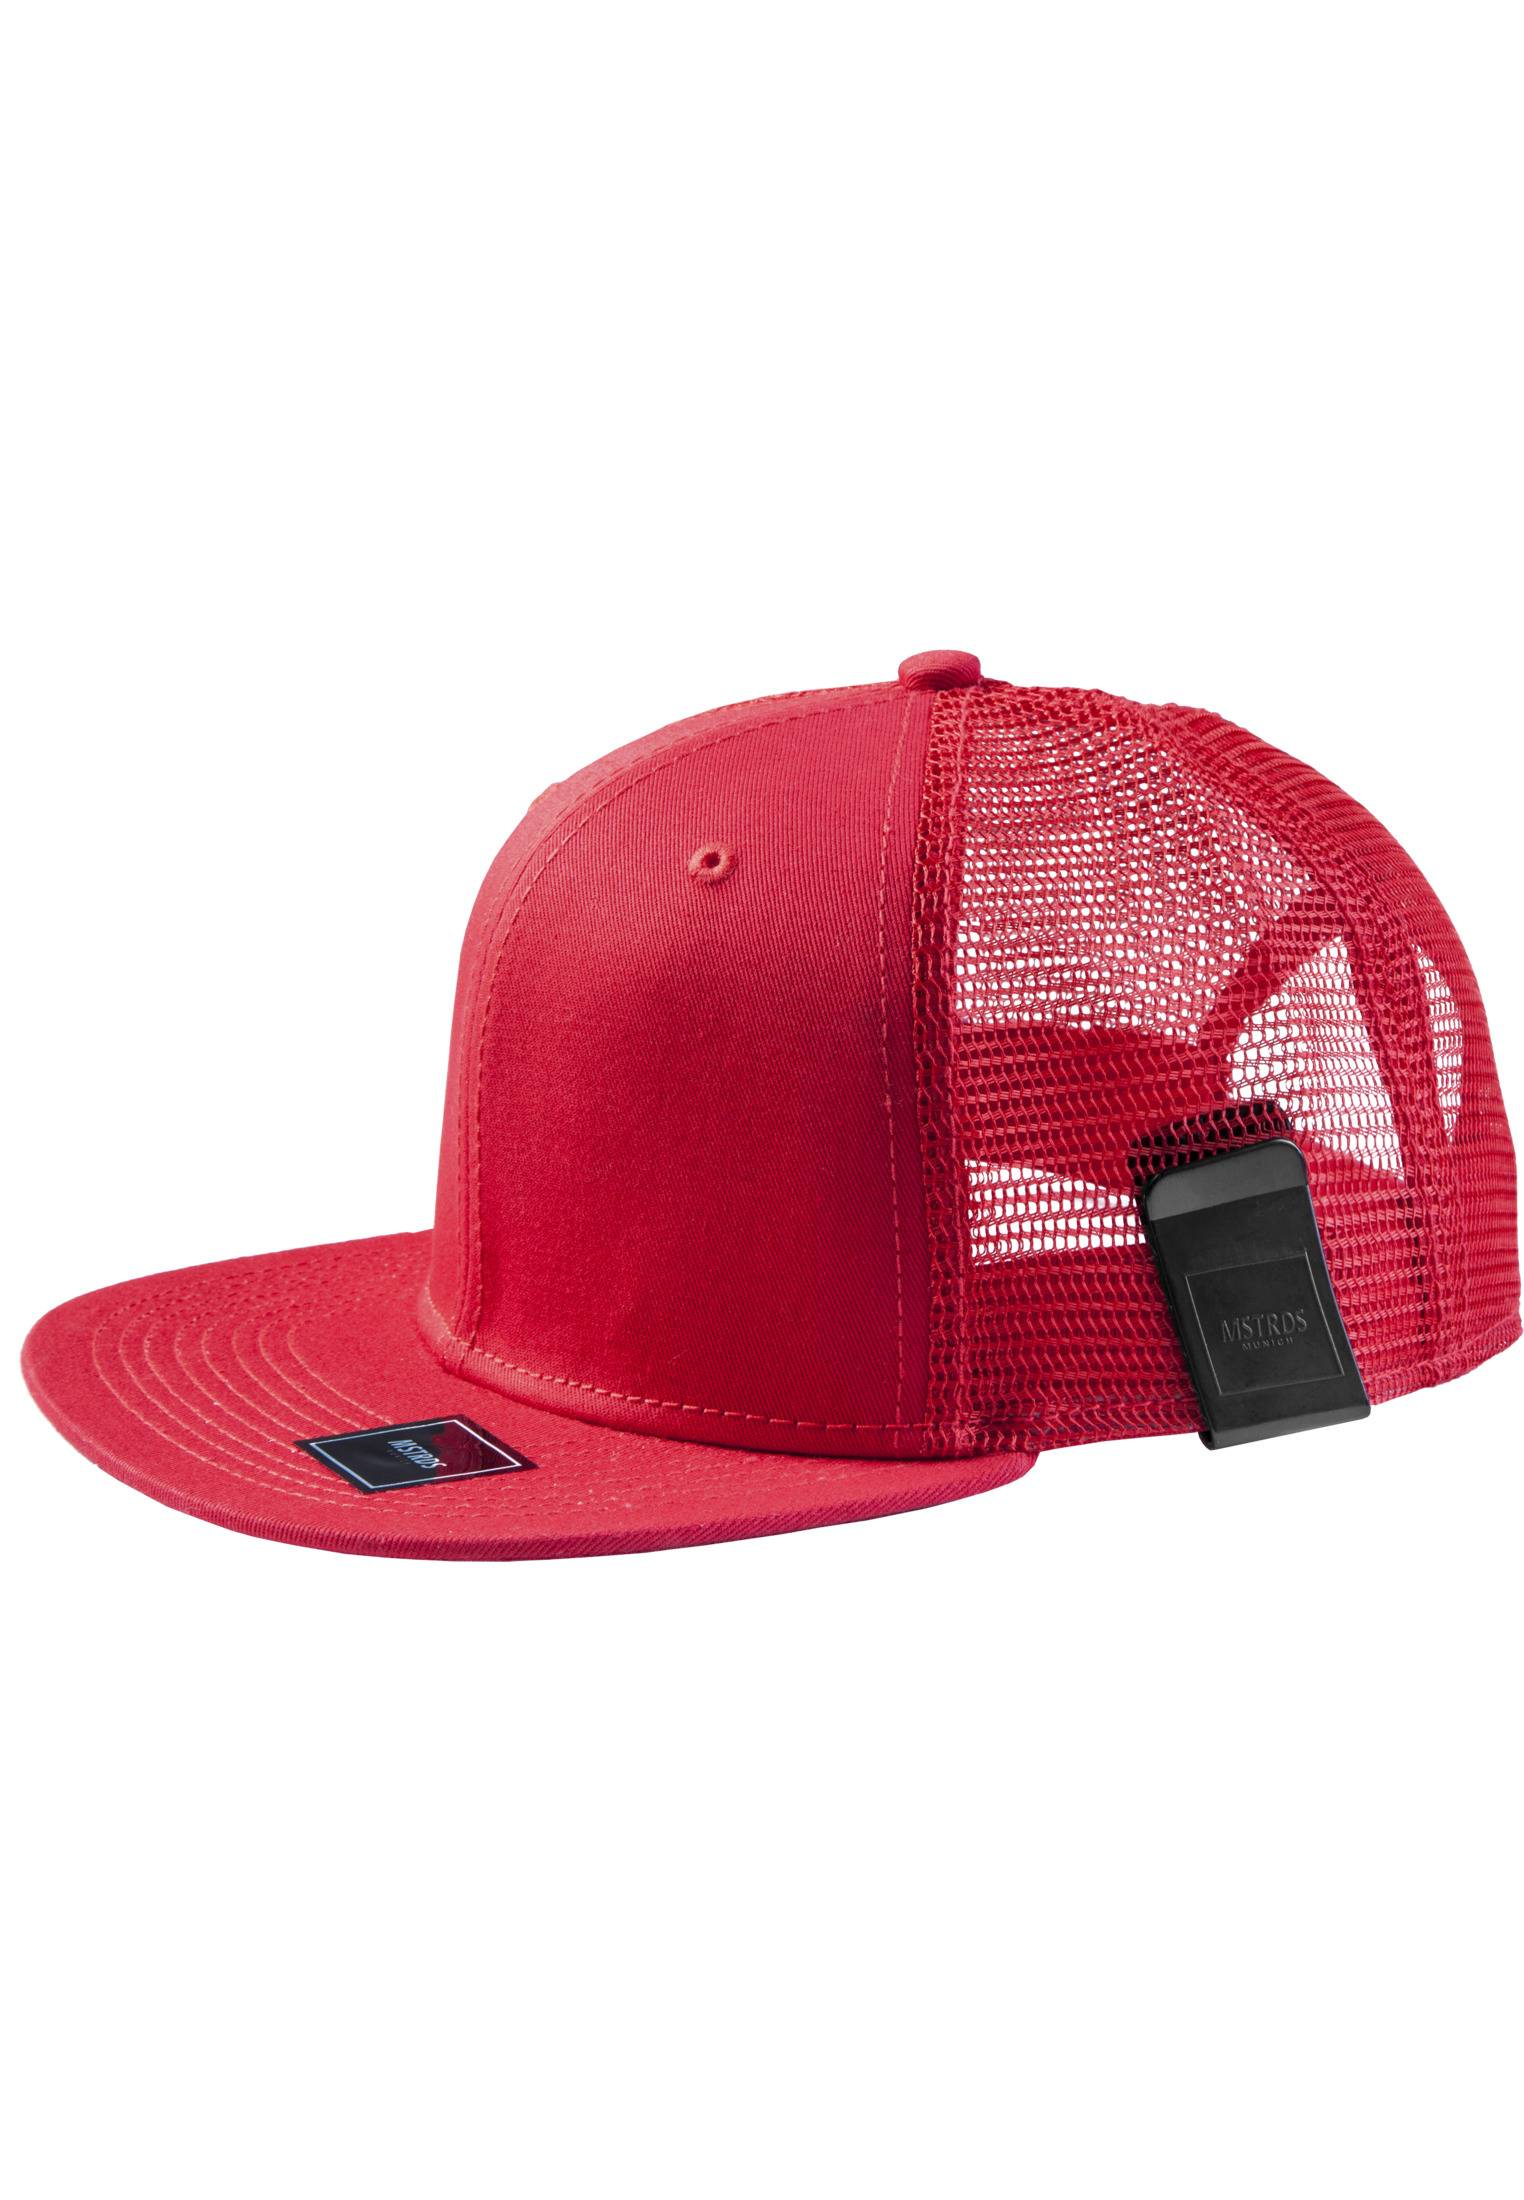 Master Dis MoneyClip Trucker Snapback Cap red - One Size